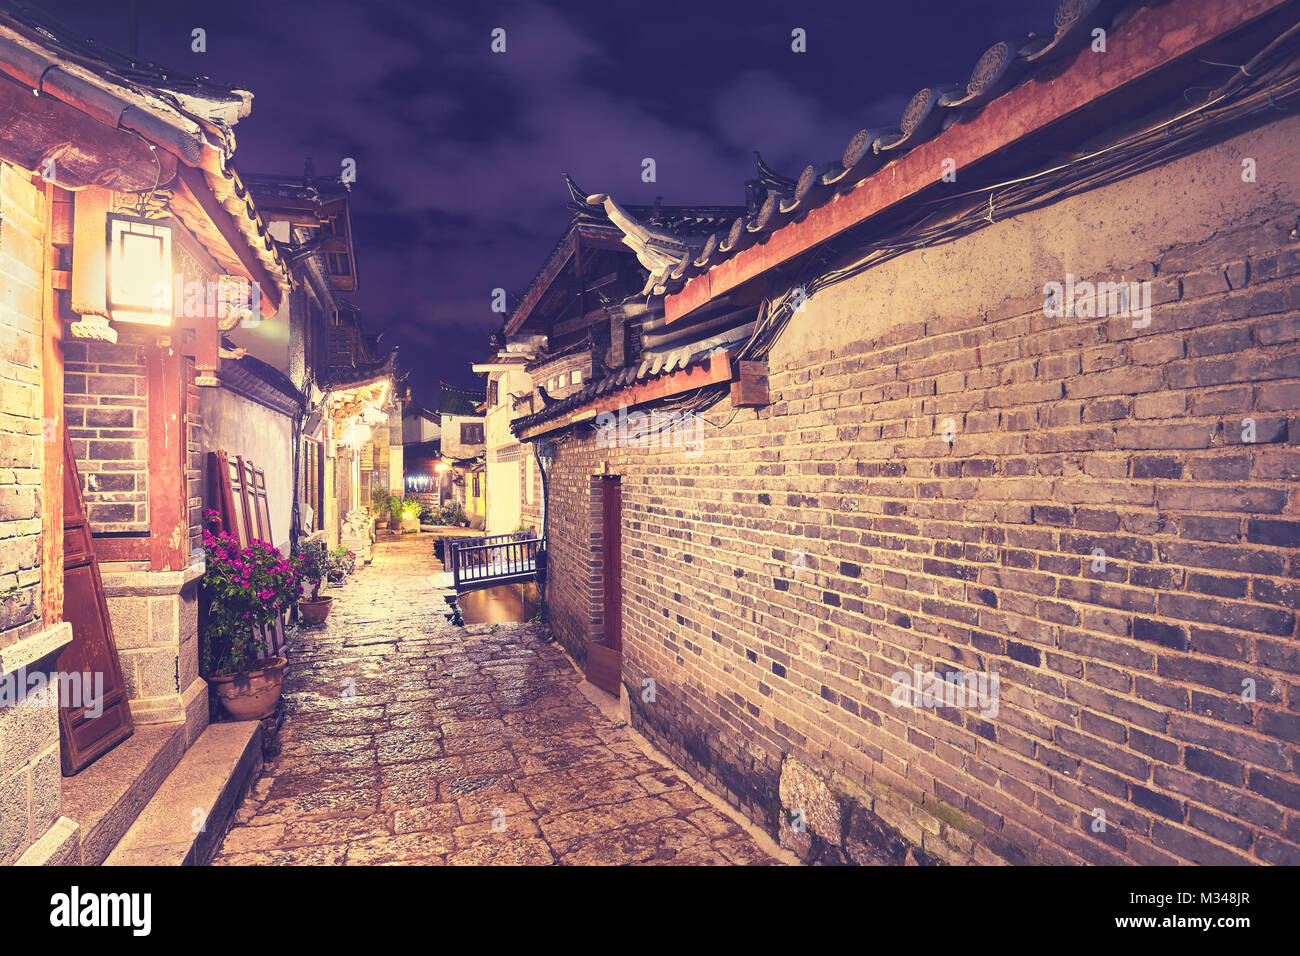 Color toned picture of the Old town of Lijiang at night, China. - Stock Image